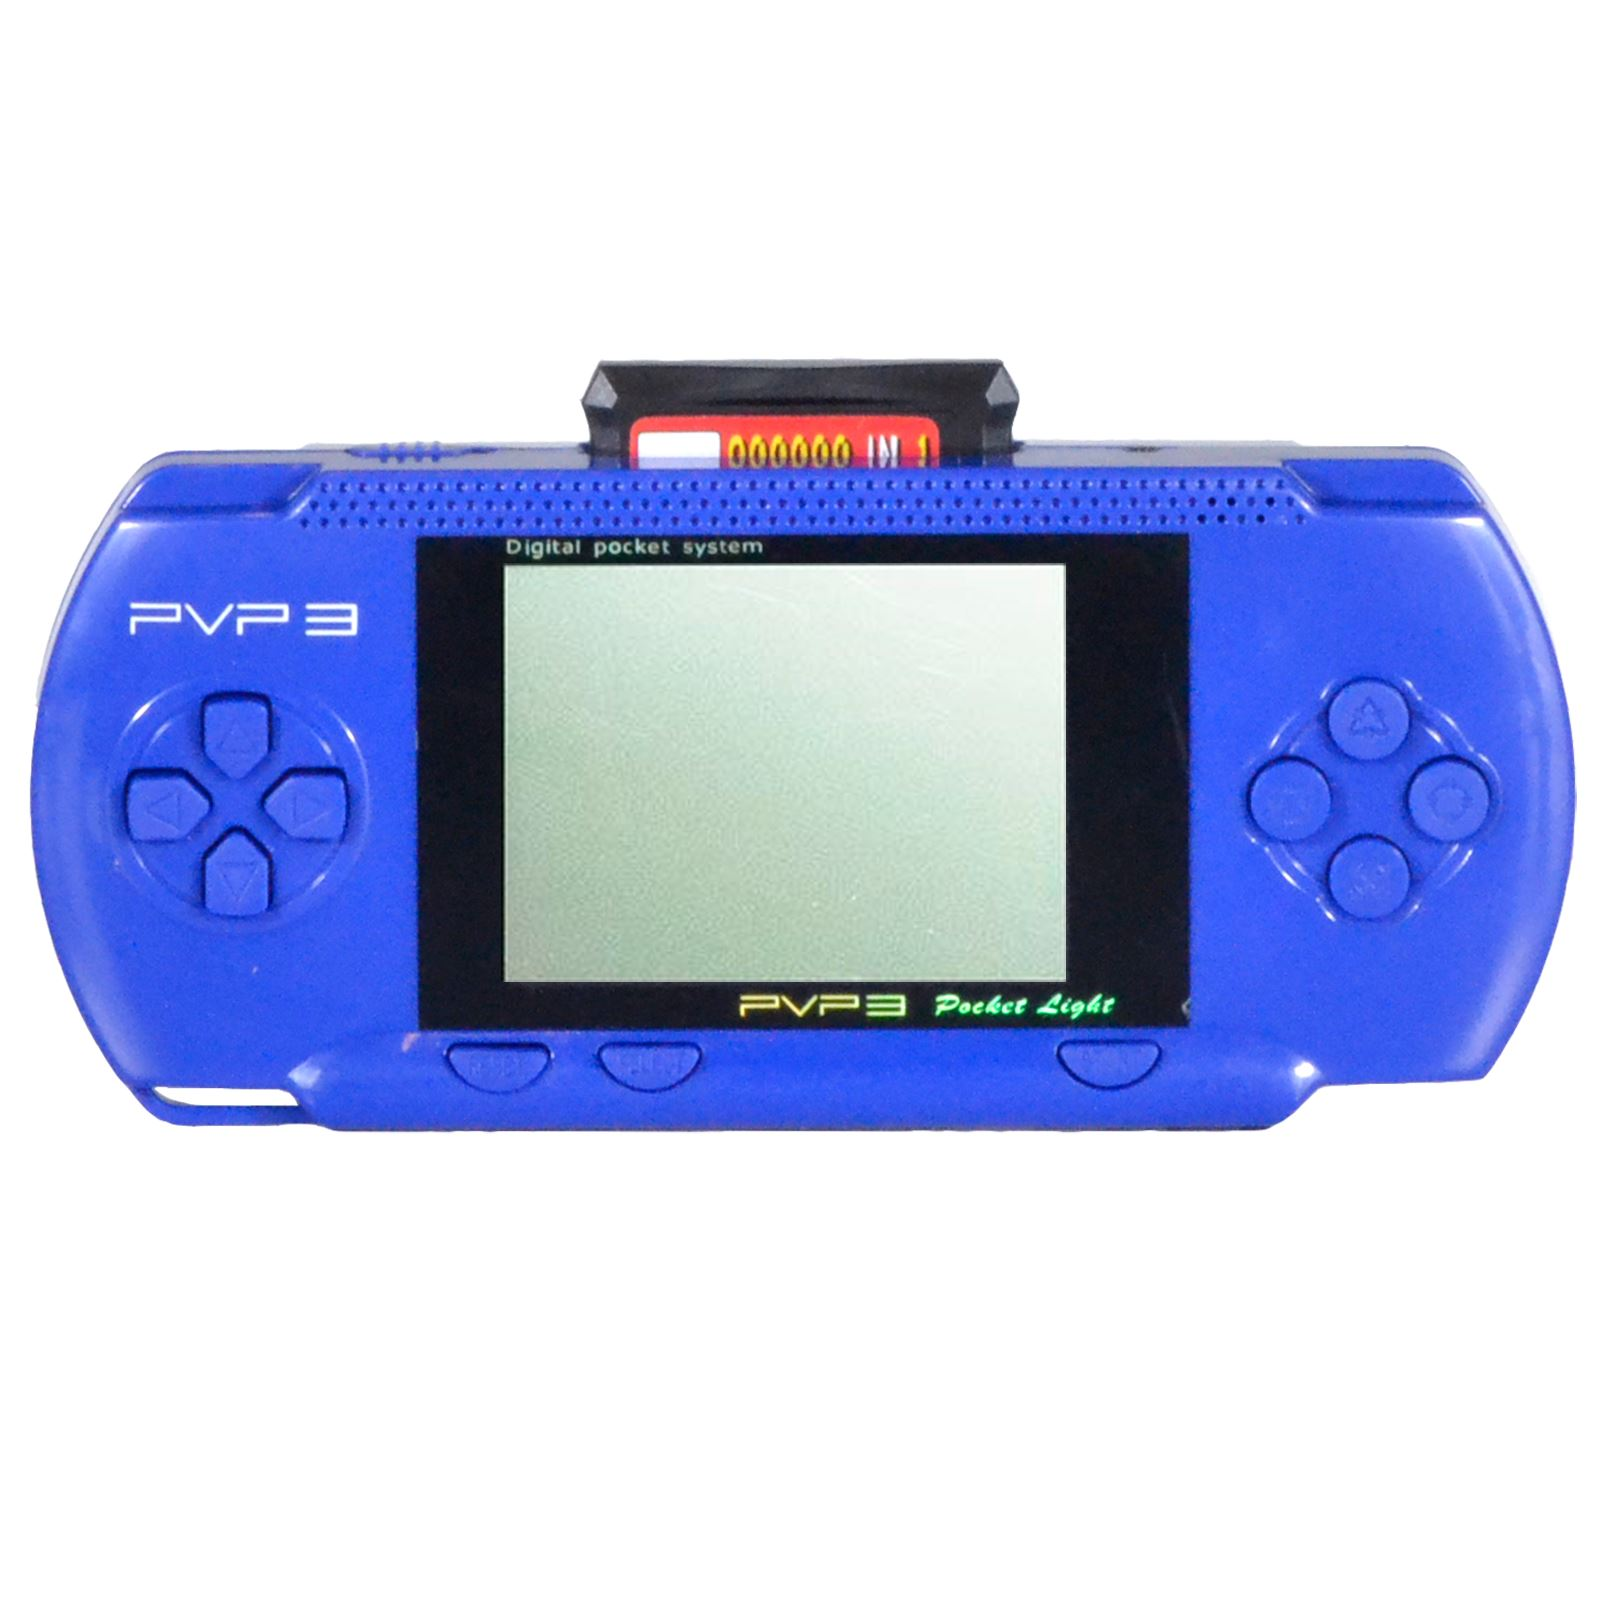 Pxp Pvp Portable Video Game 16 Bit Handheld Console 150